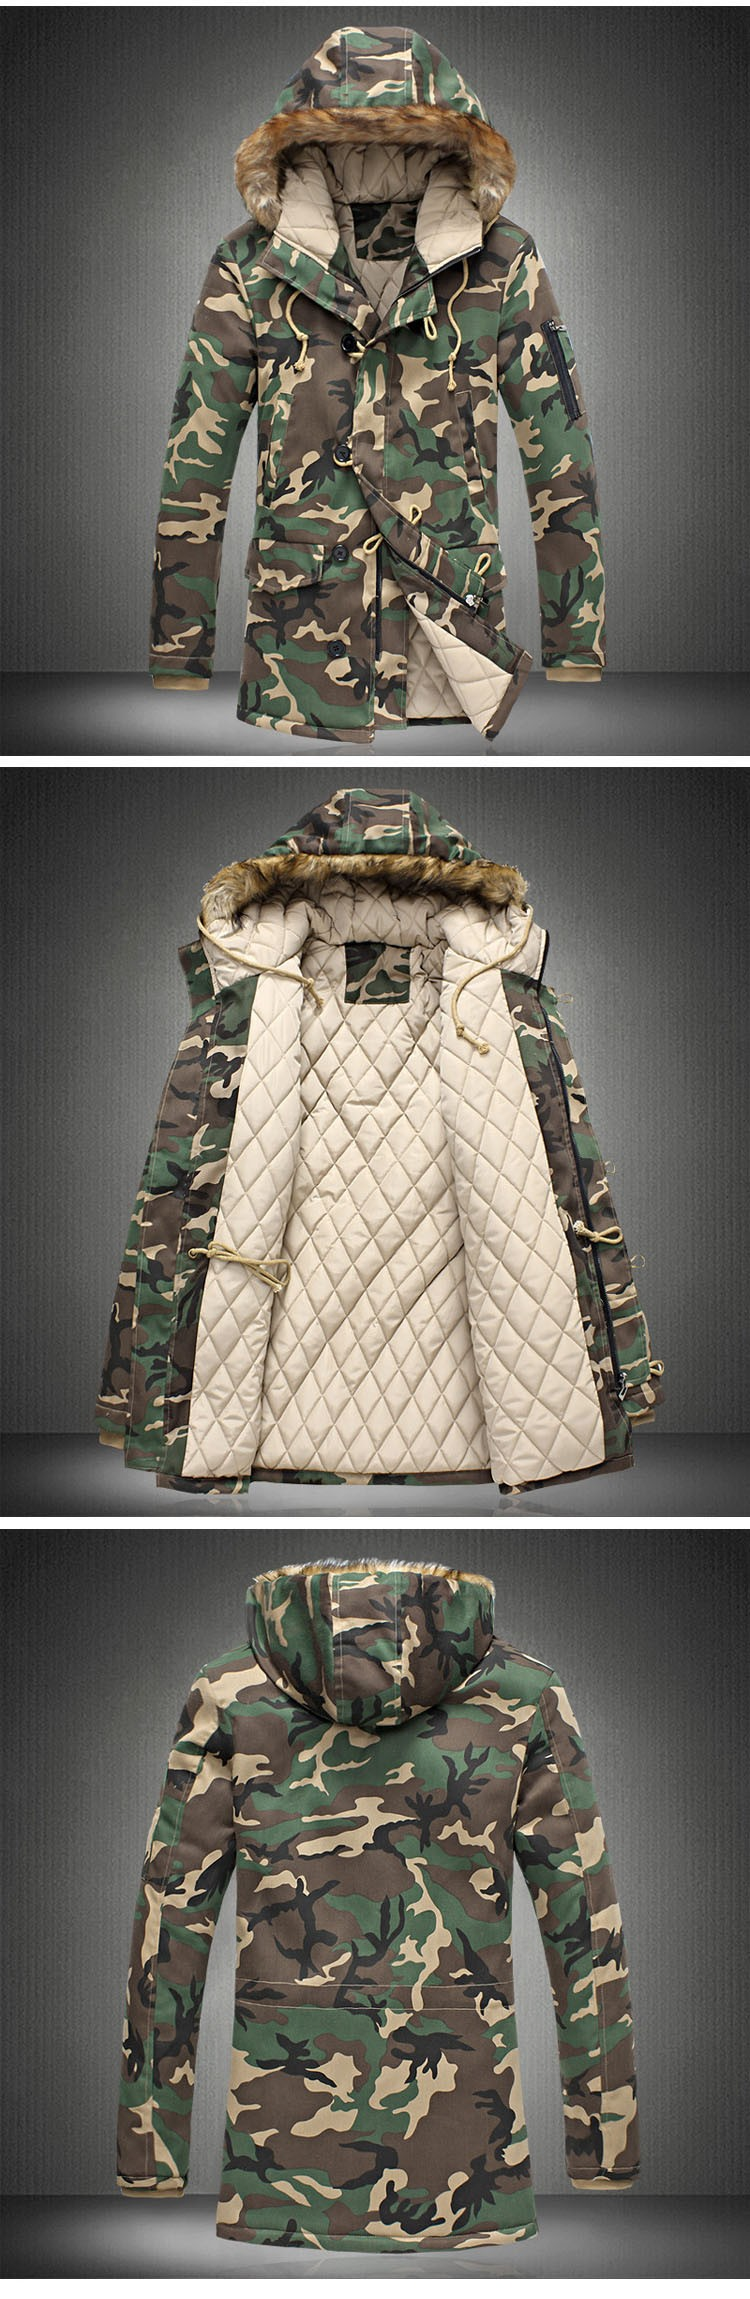 Aolamegs Camouflage Winter Parka Men Thicken Warm Fur Collar Cotton-padded Jacket Outerwear 2016 Lovers Hooded Winter Coat S-5XL (15)